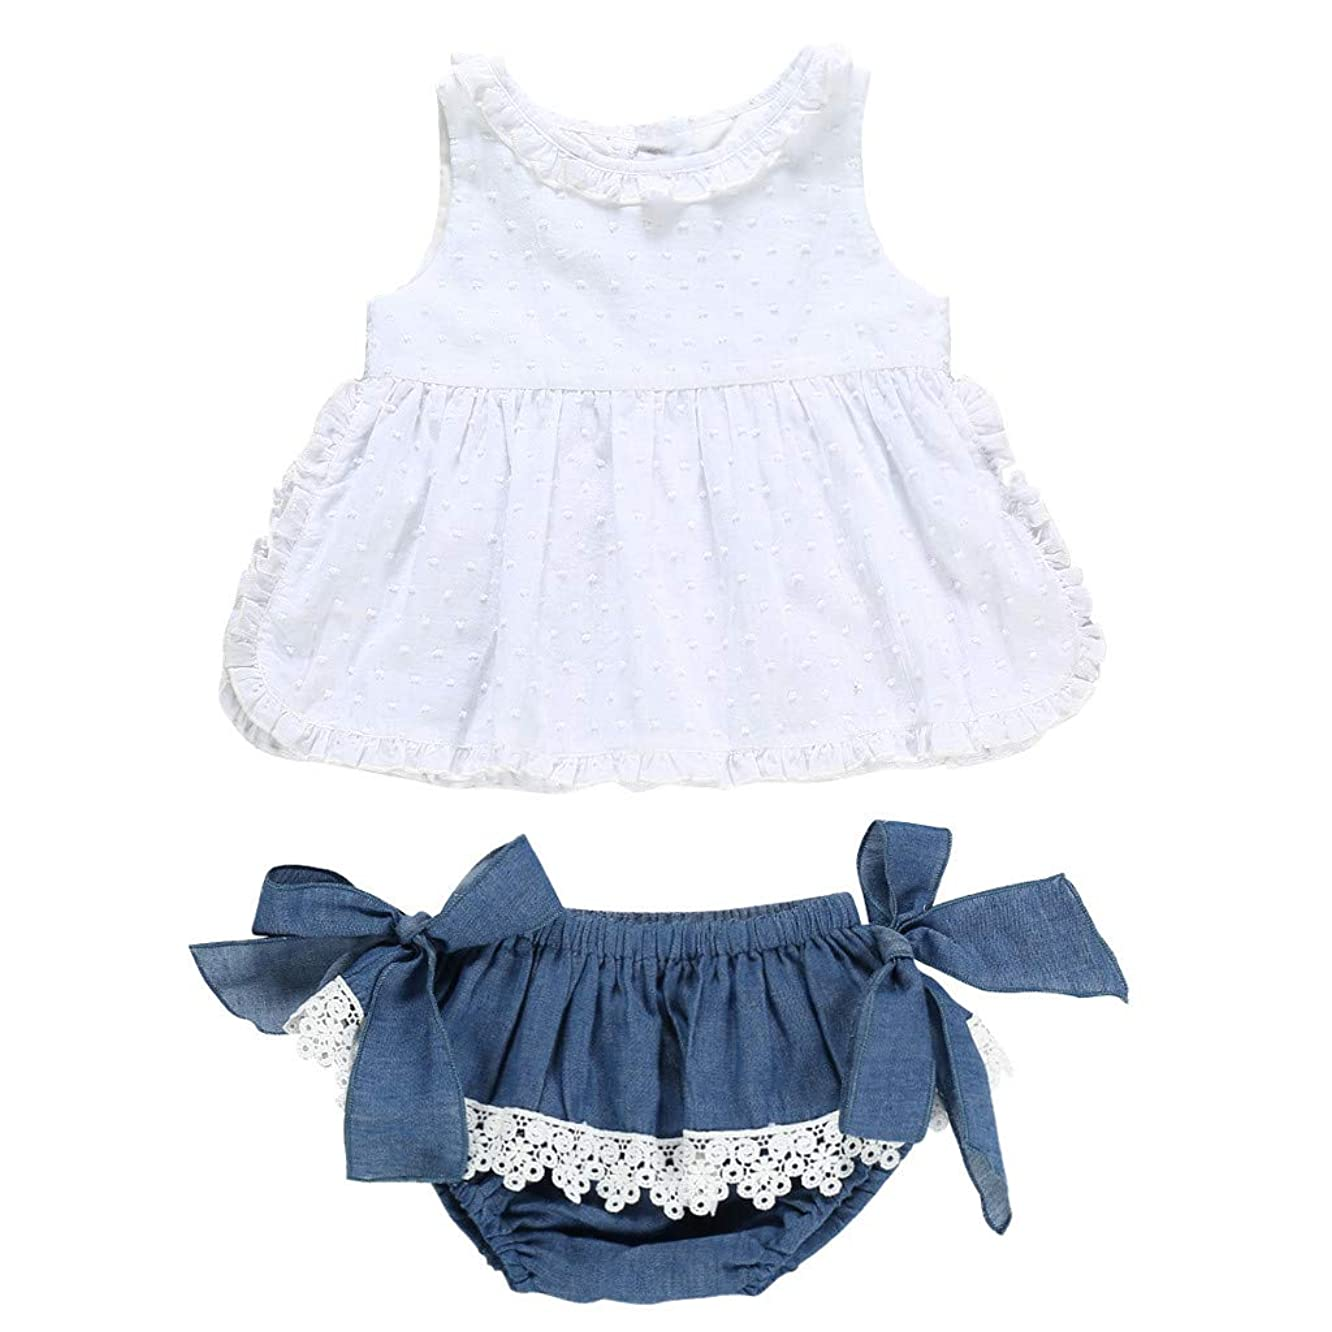 Baby Toddler Girls Summer Clothes for 1-5 Years Old Child Lace Ruffled Top Bow Demin Shorts Outfits Sets